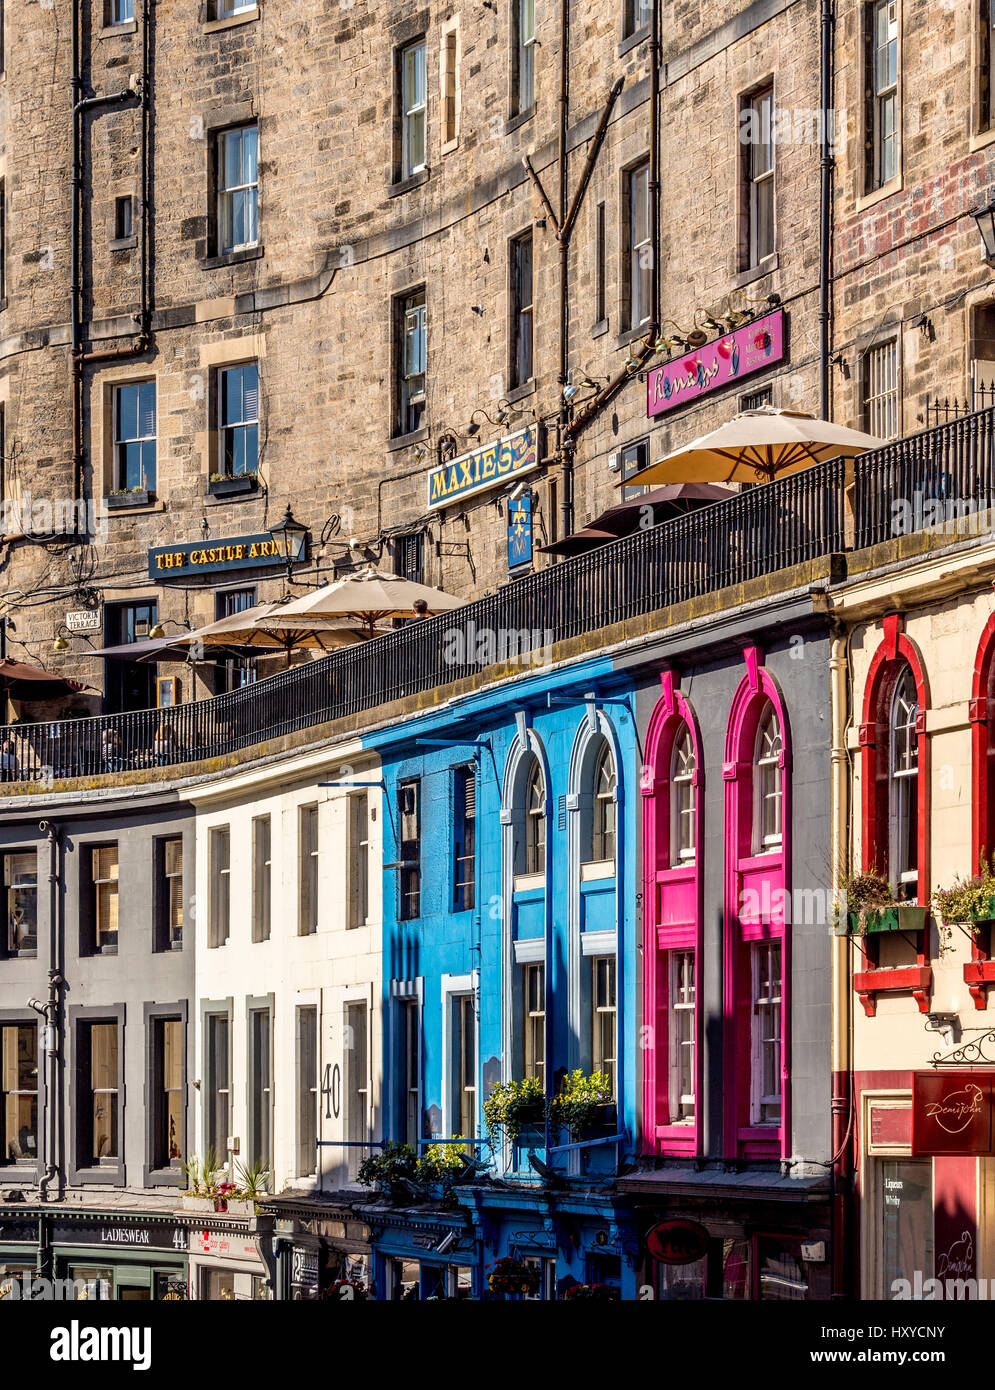 Colourful shop fronts in Victoria Street, part of the old town, Edinburgh, Scotland. Stock Photo